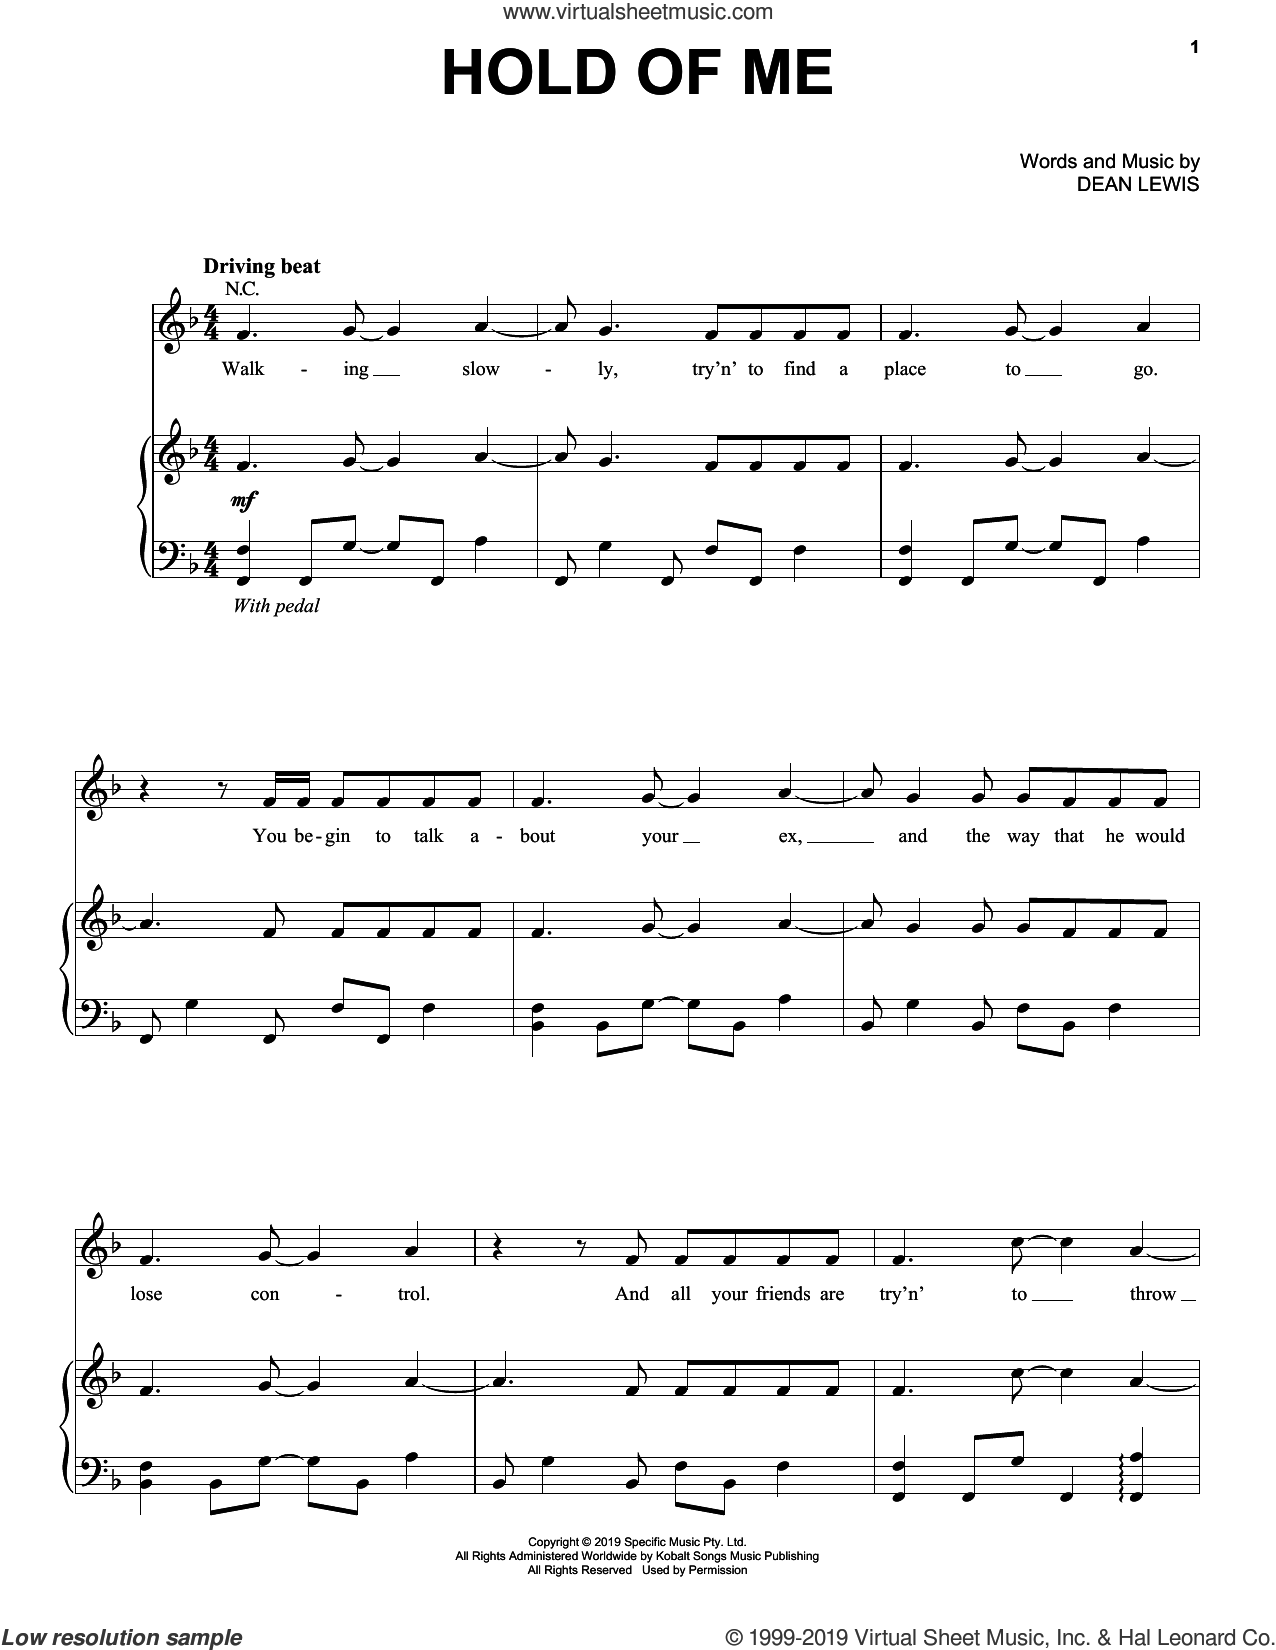 Hold Of Me sheet music for voice, piano or guitar by Dean Lewis, intermediate skill level